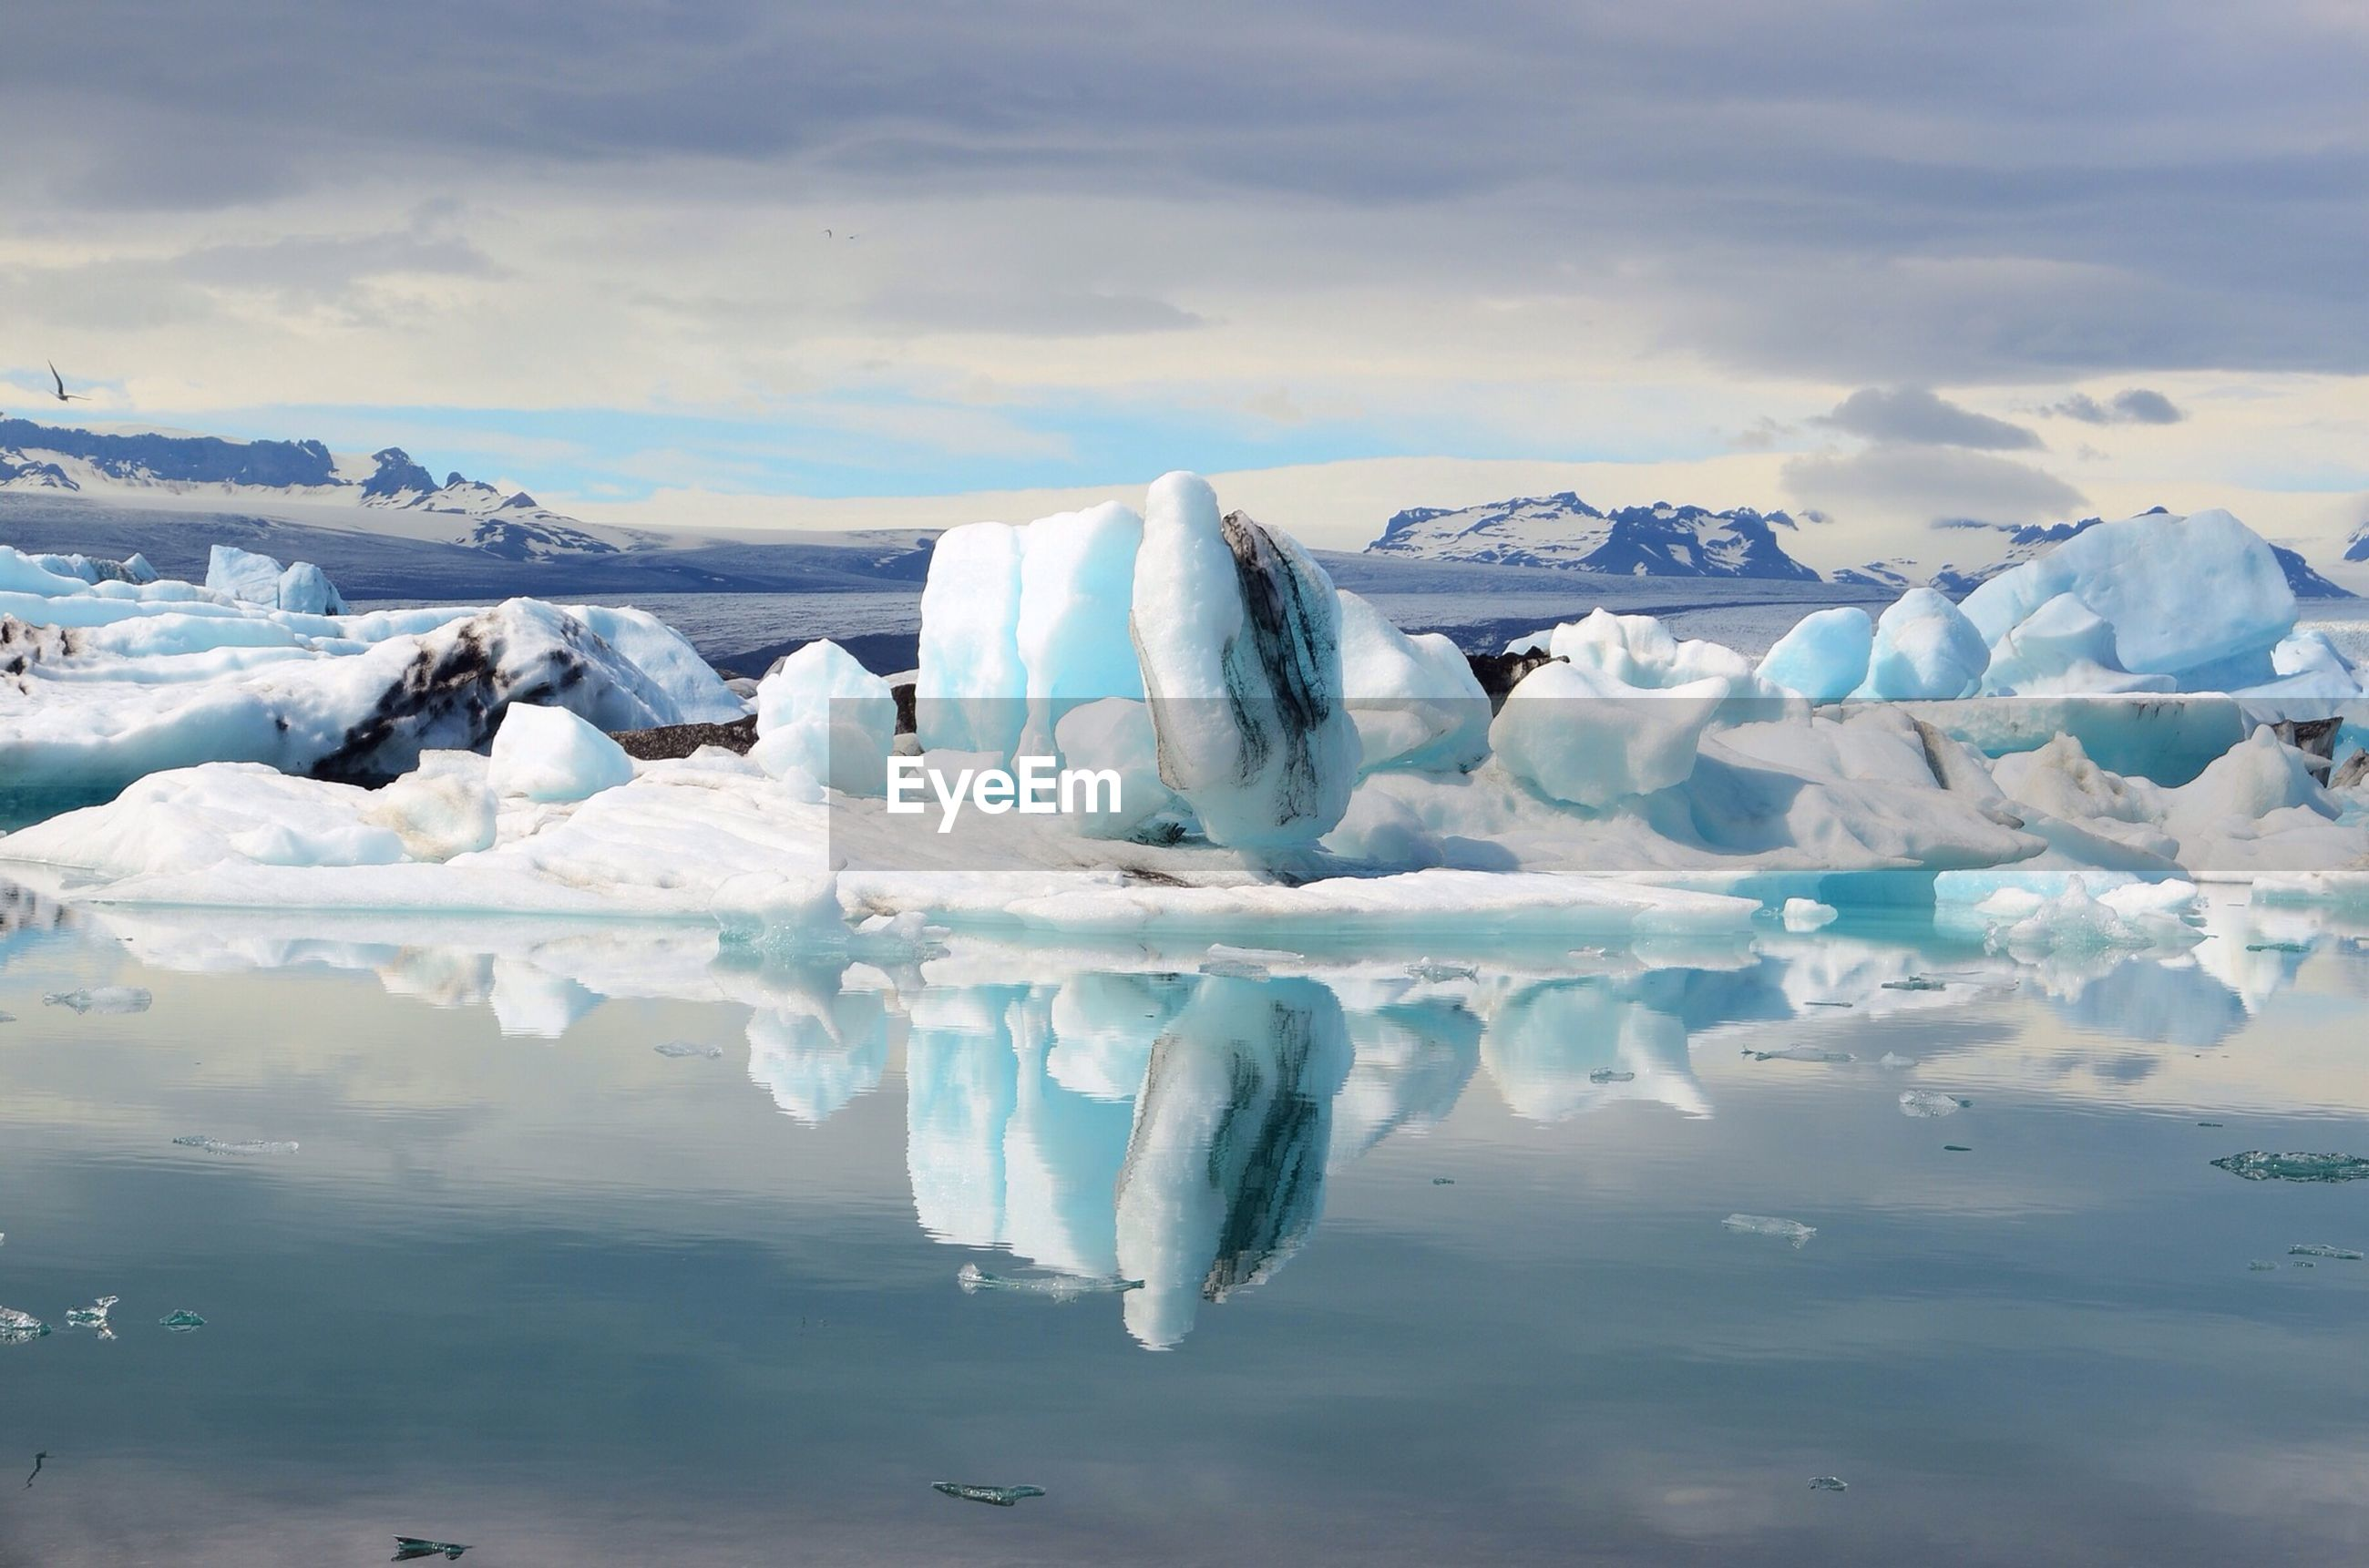 Reflection of iceberg in water